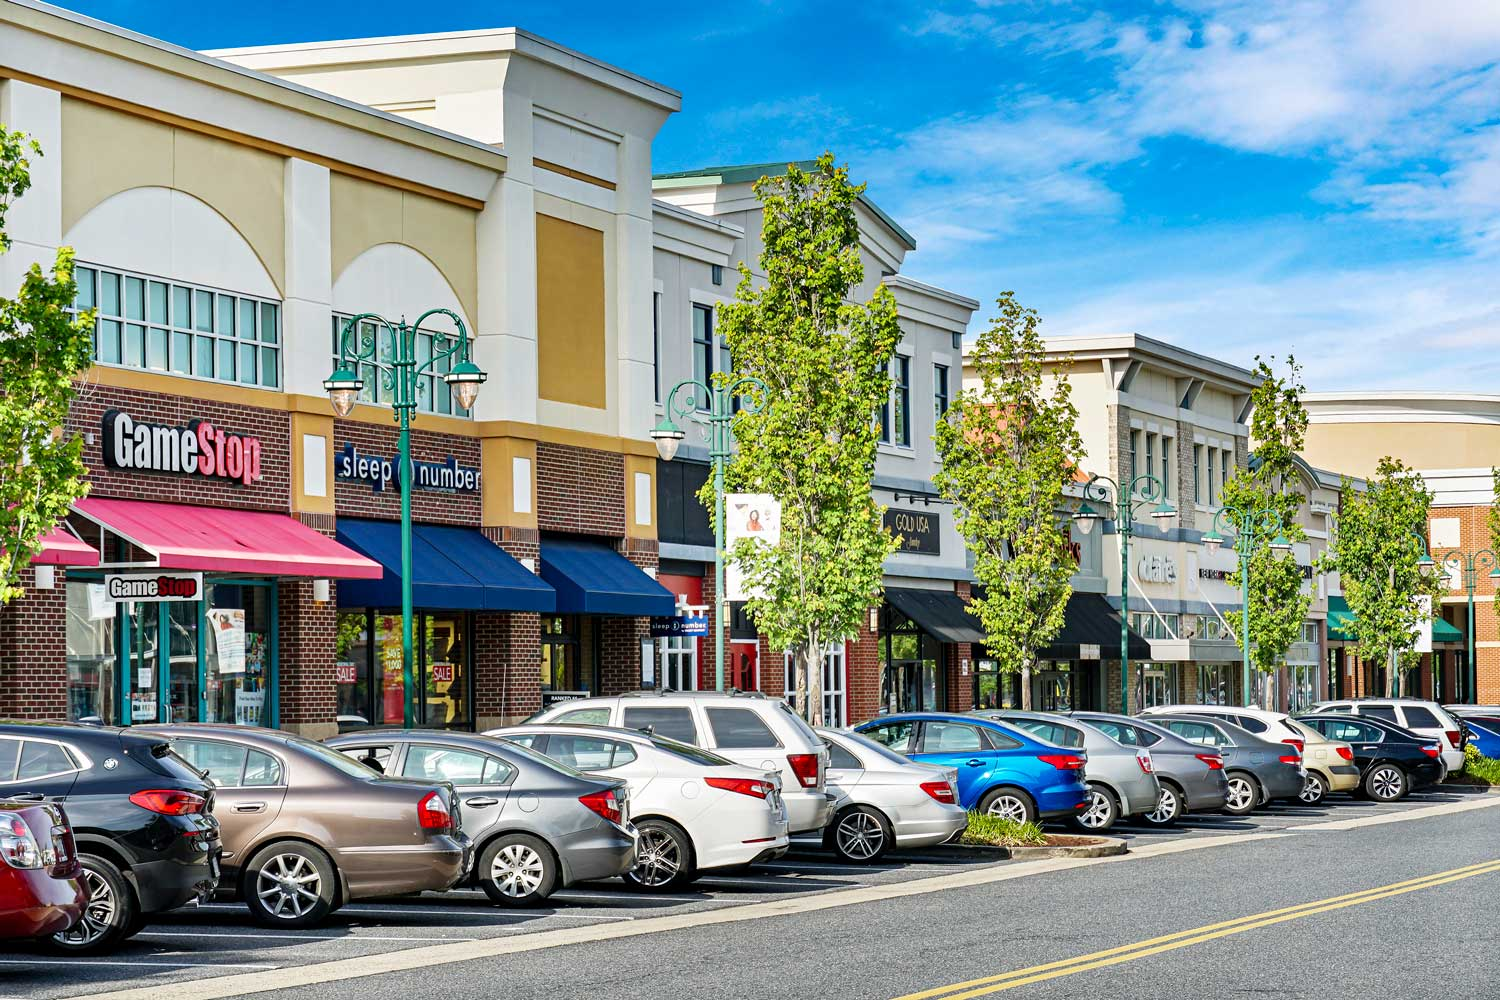 Bowie Town Center is 15 minutes from Heritage Square Apartments in New Carrollton, MD